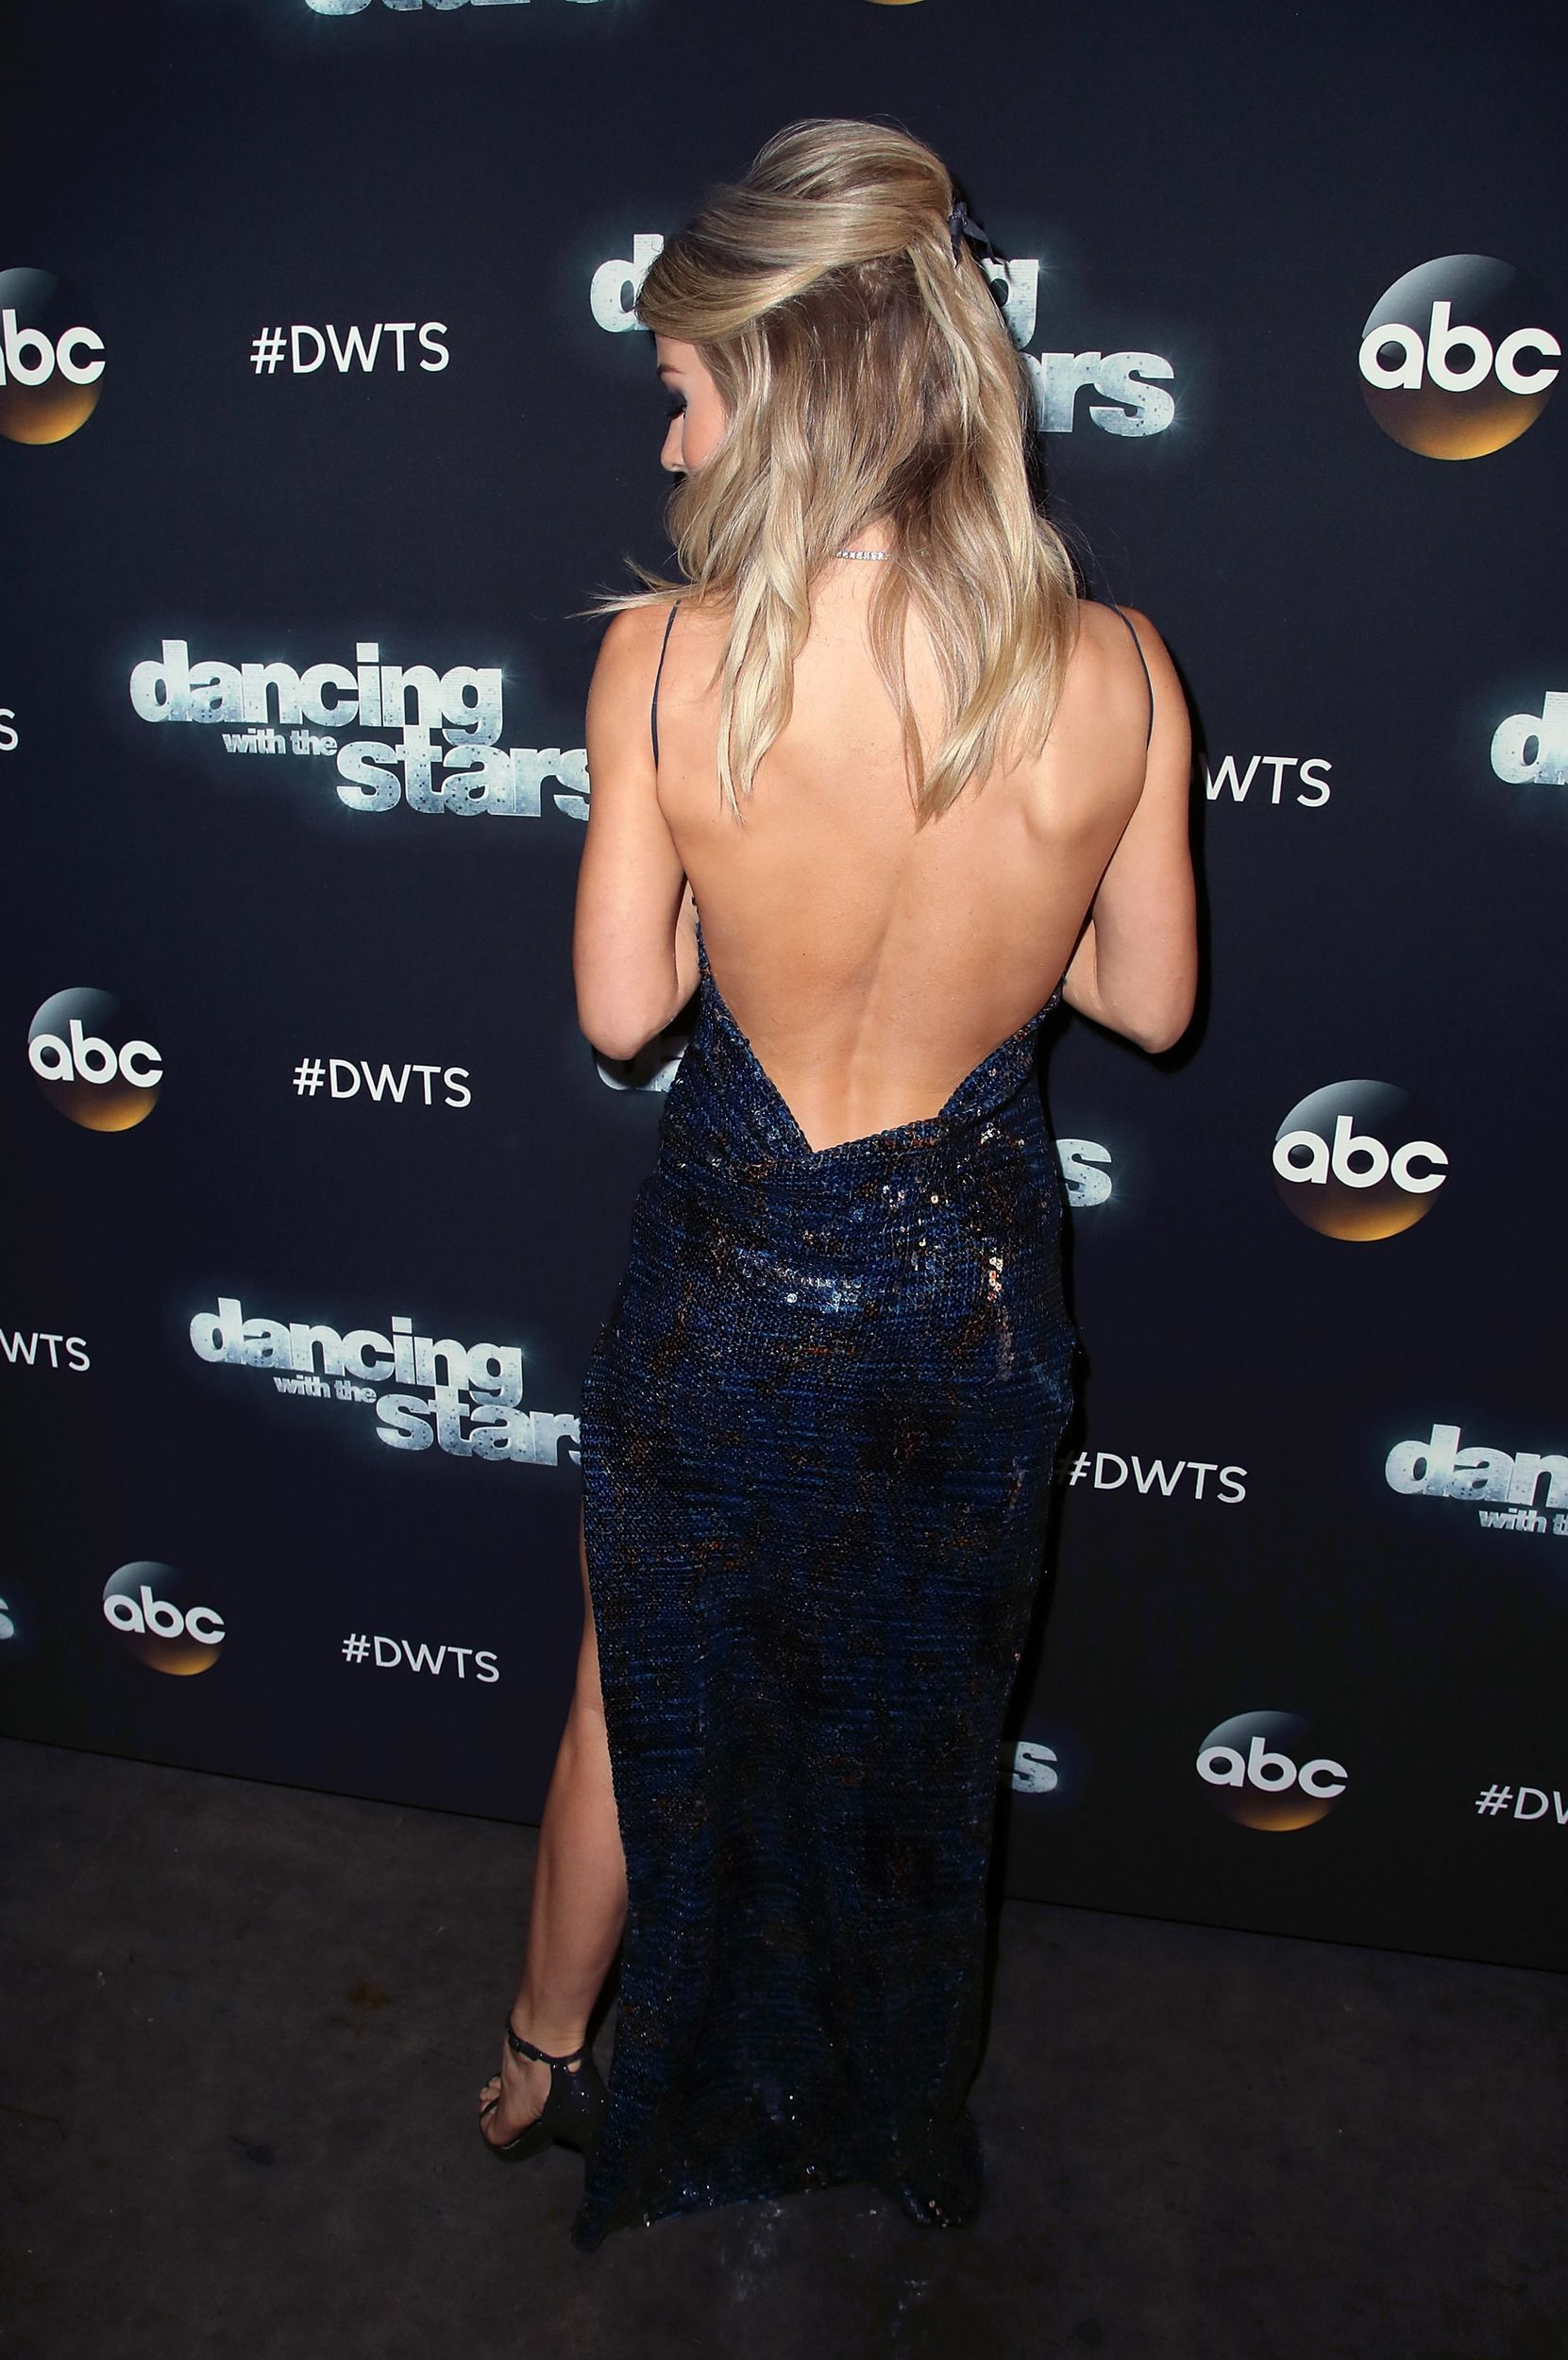 Work it! Julianne Hough sizzles in sparkly floor-length gown that shows off a lot of skin #juliannehoughstyle While we sure miss her out on the dance floor, Julianne Hough gave quite a performance on the Dancing With the Stars red carpet on Monday night! #juliannehoughstyle